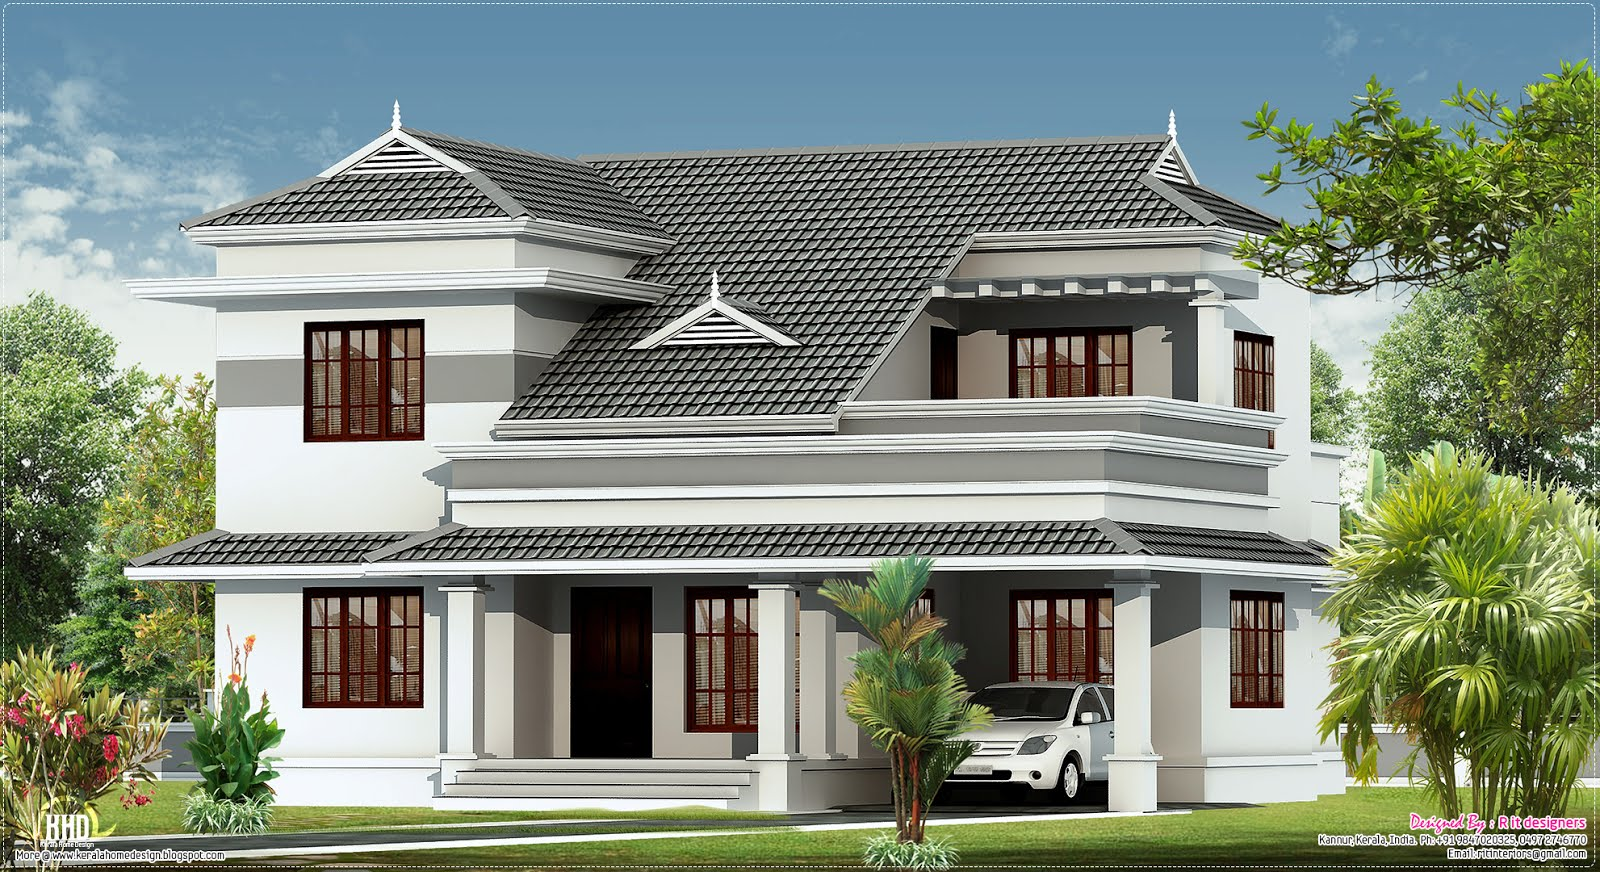 new villa design in 2250 kerala home design and floor plans. Black Bedroom Furniture Sets. Home Design Ideas